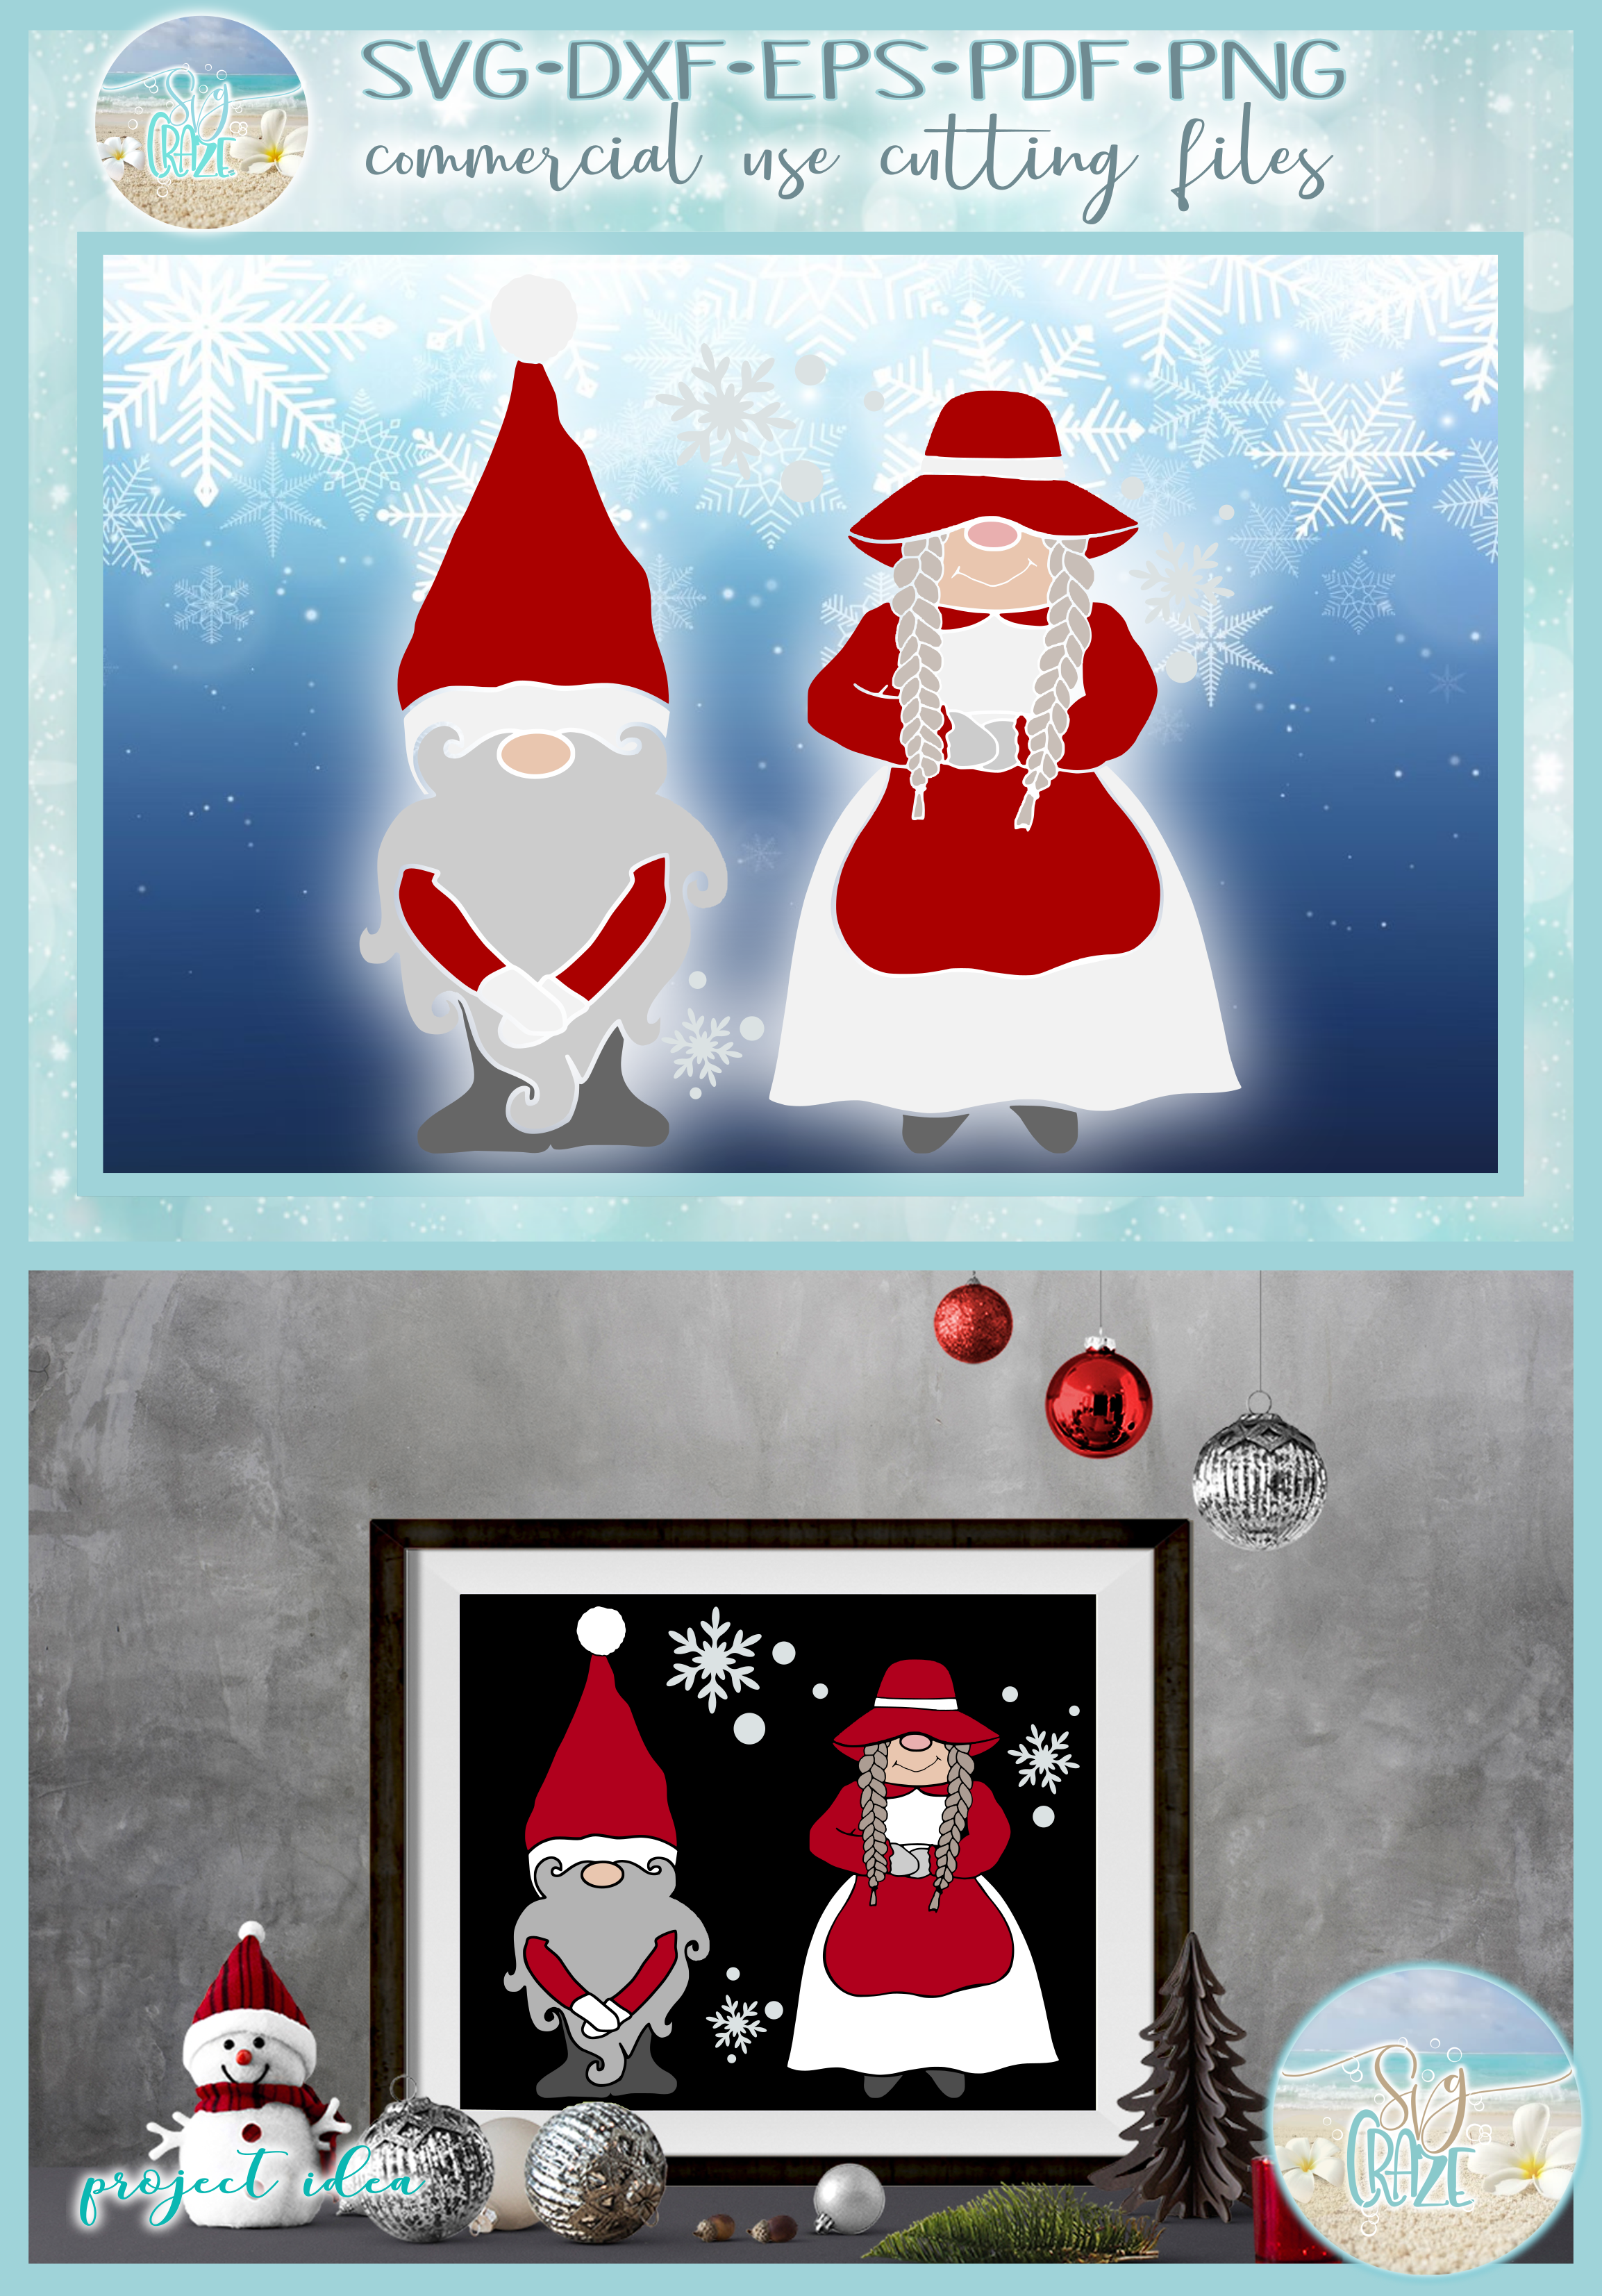 Mr and Mrs Gnome SVG Dxf Eps Png PDF Files for Cricut example image 4